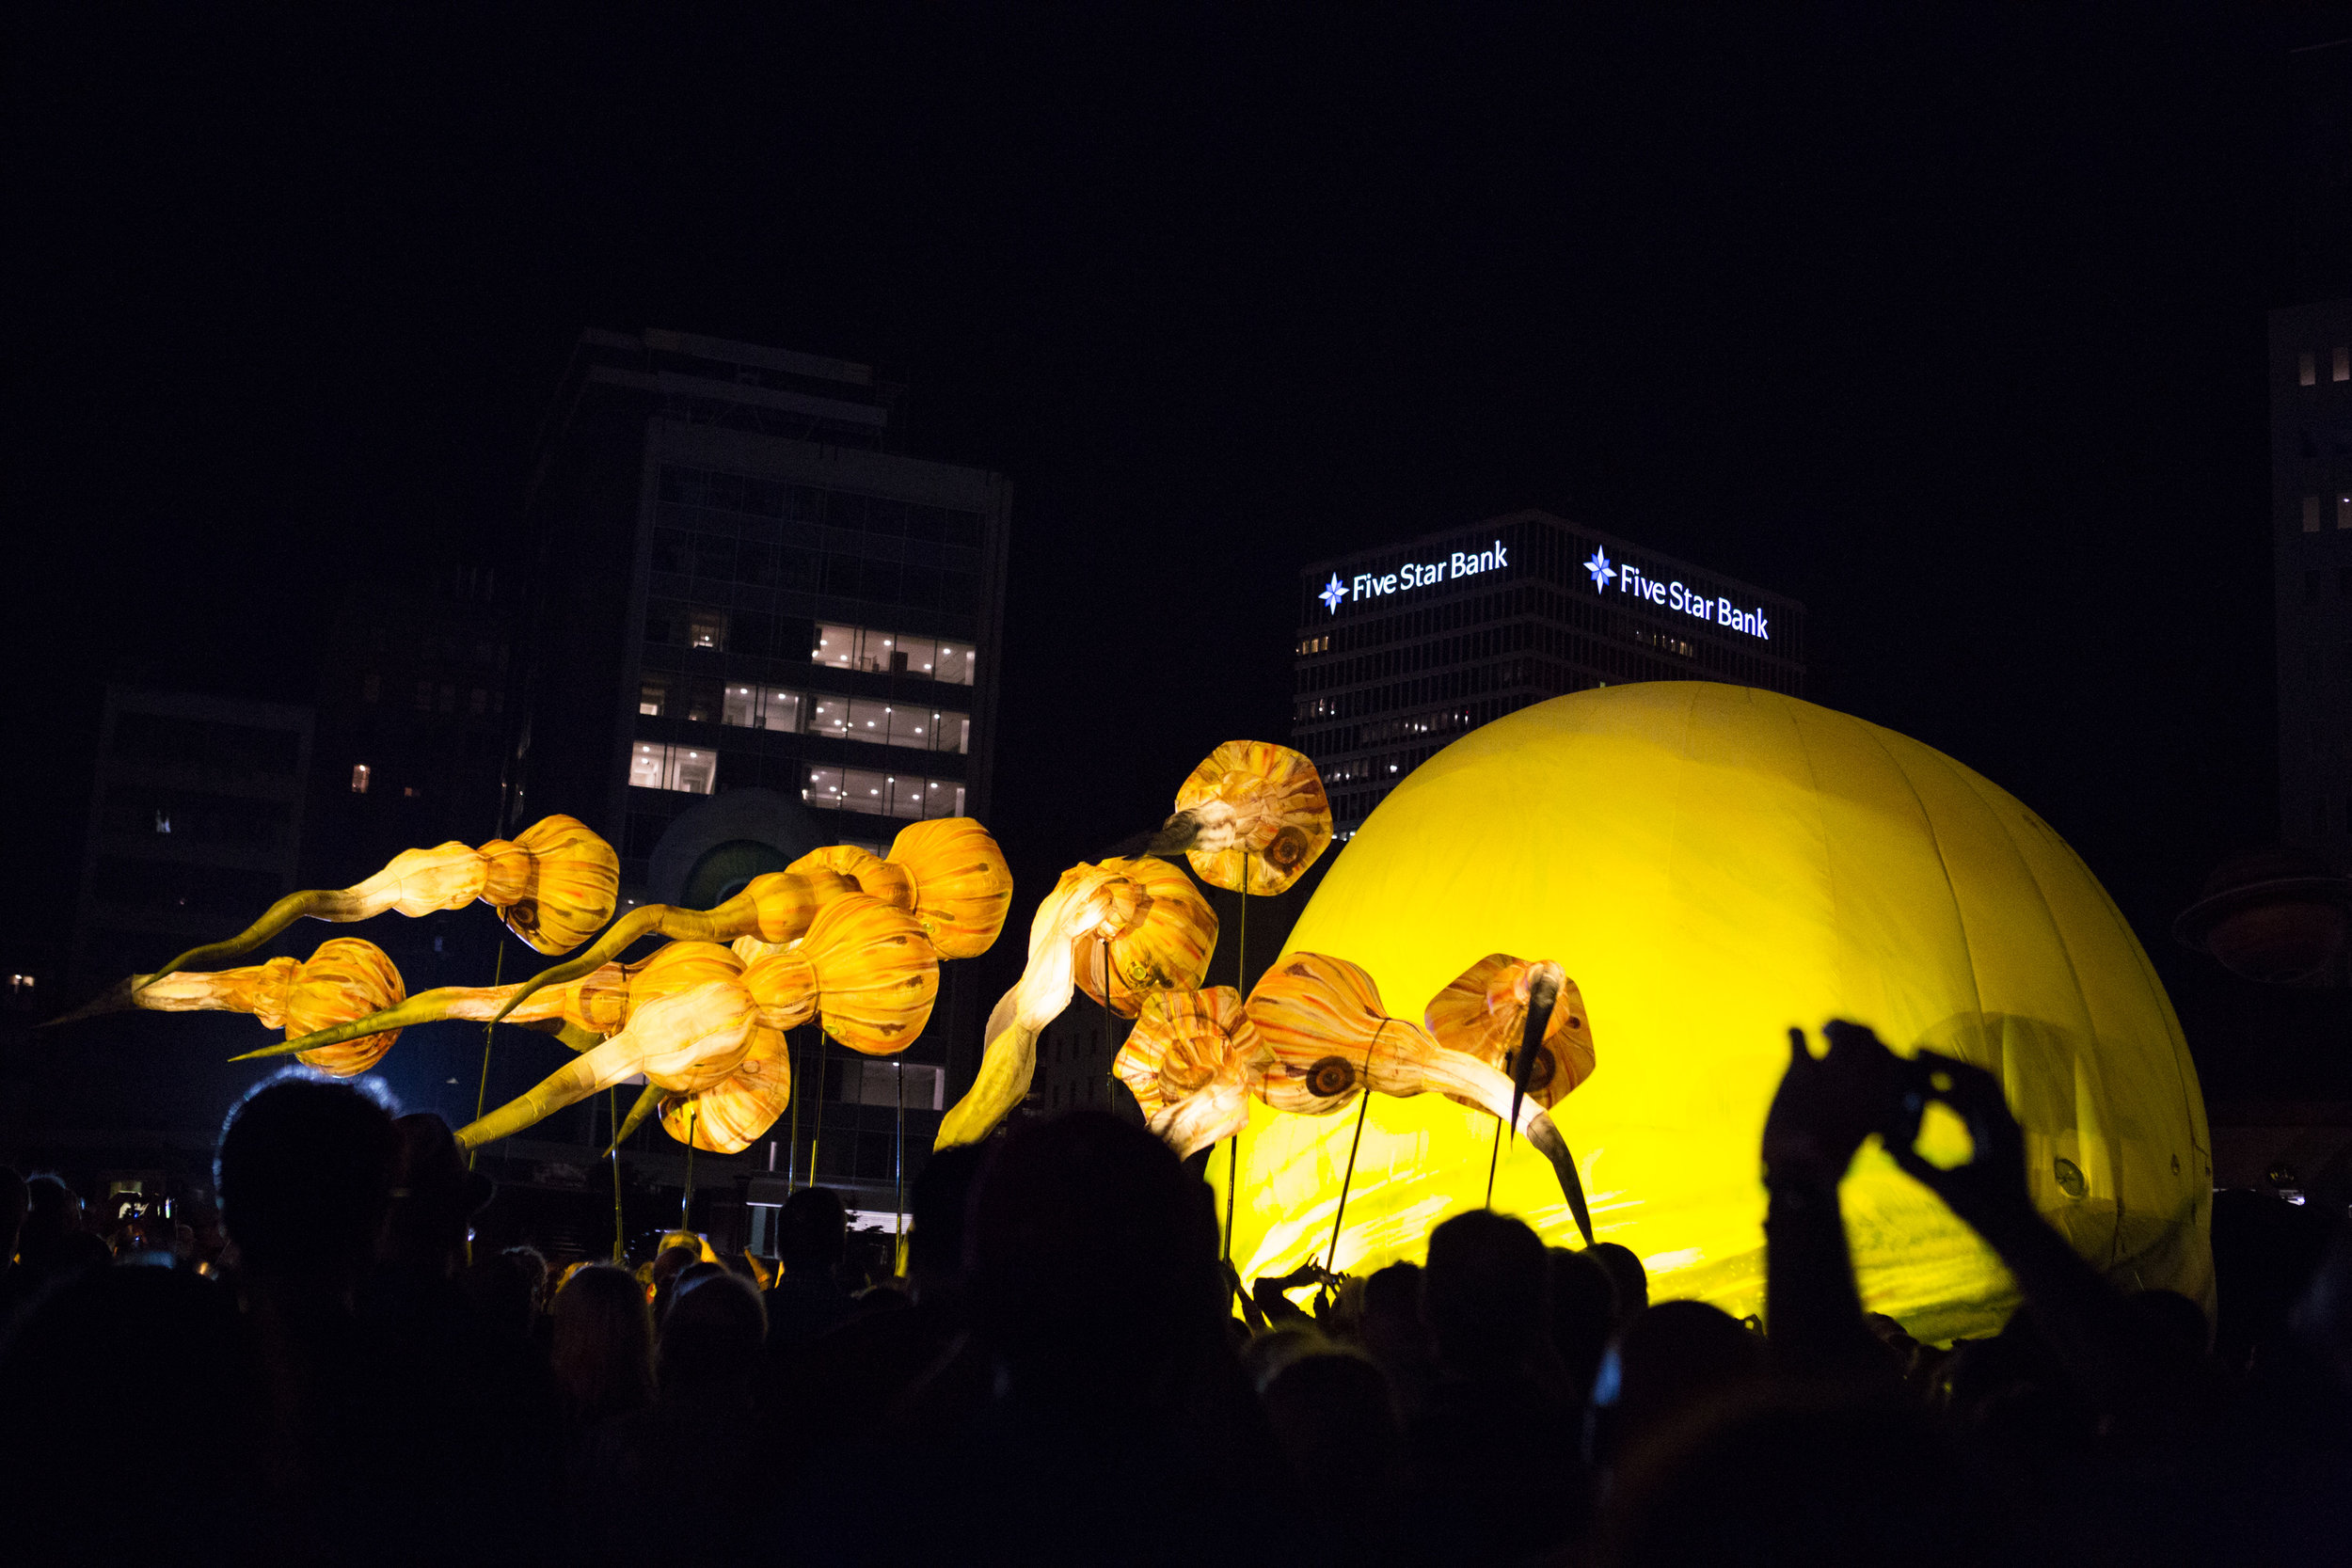 Plasticiens Volants brings their inflatables into the crowd as part of the performance. Participants are encouraged to touch and interact with the balloons.